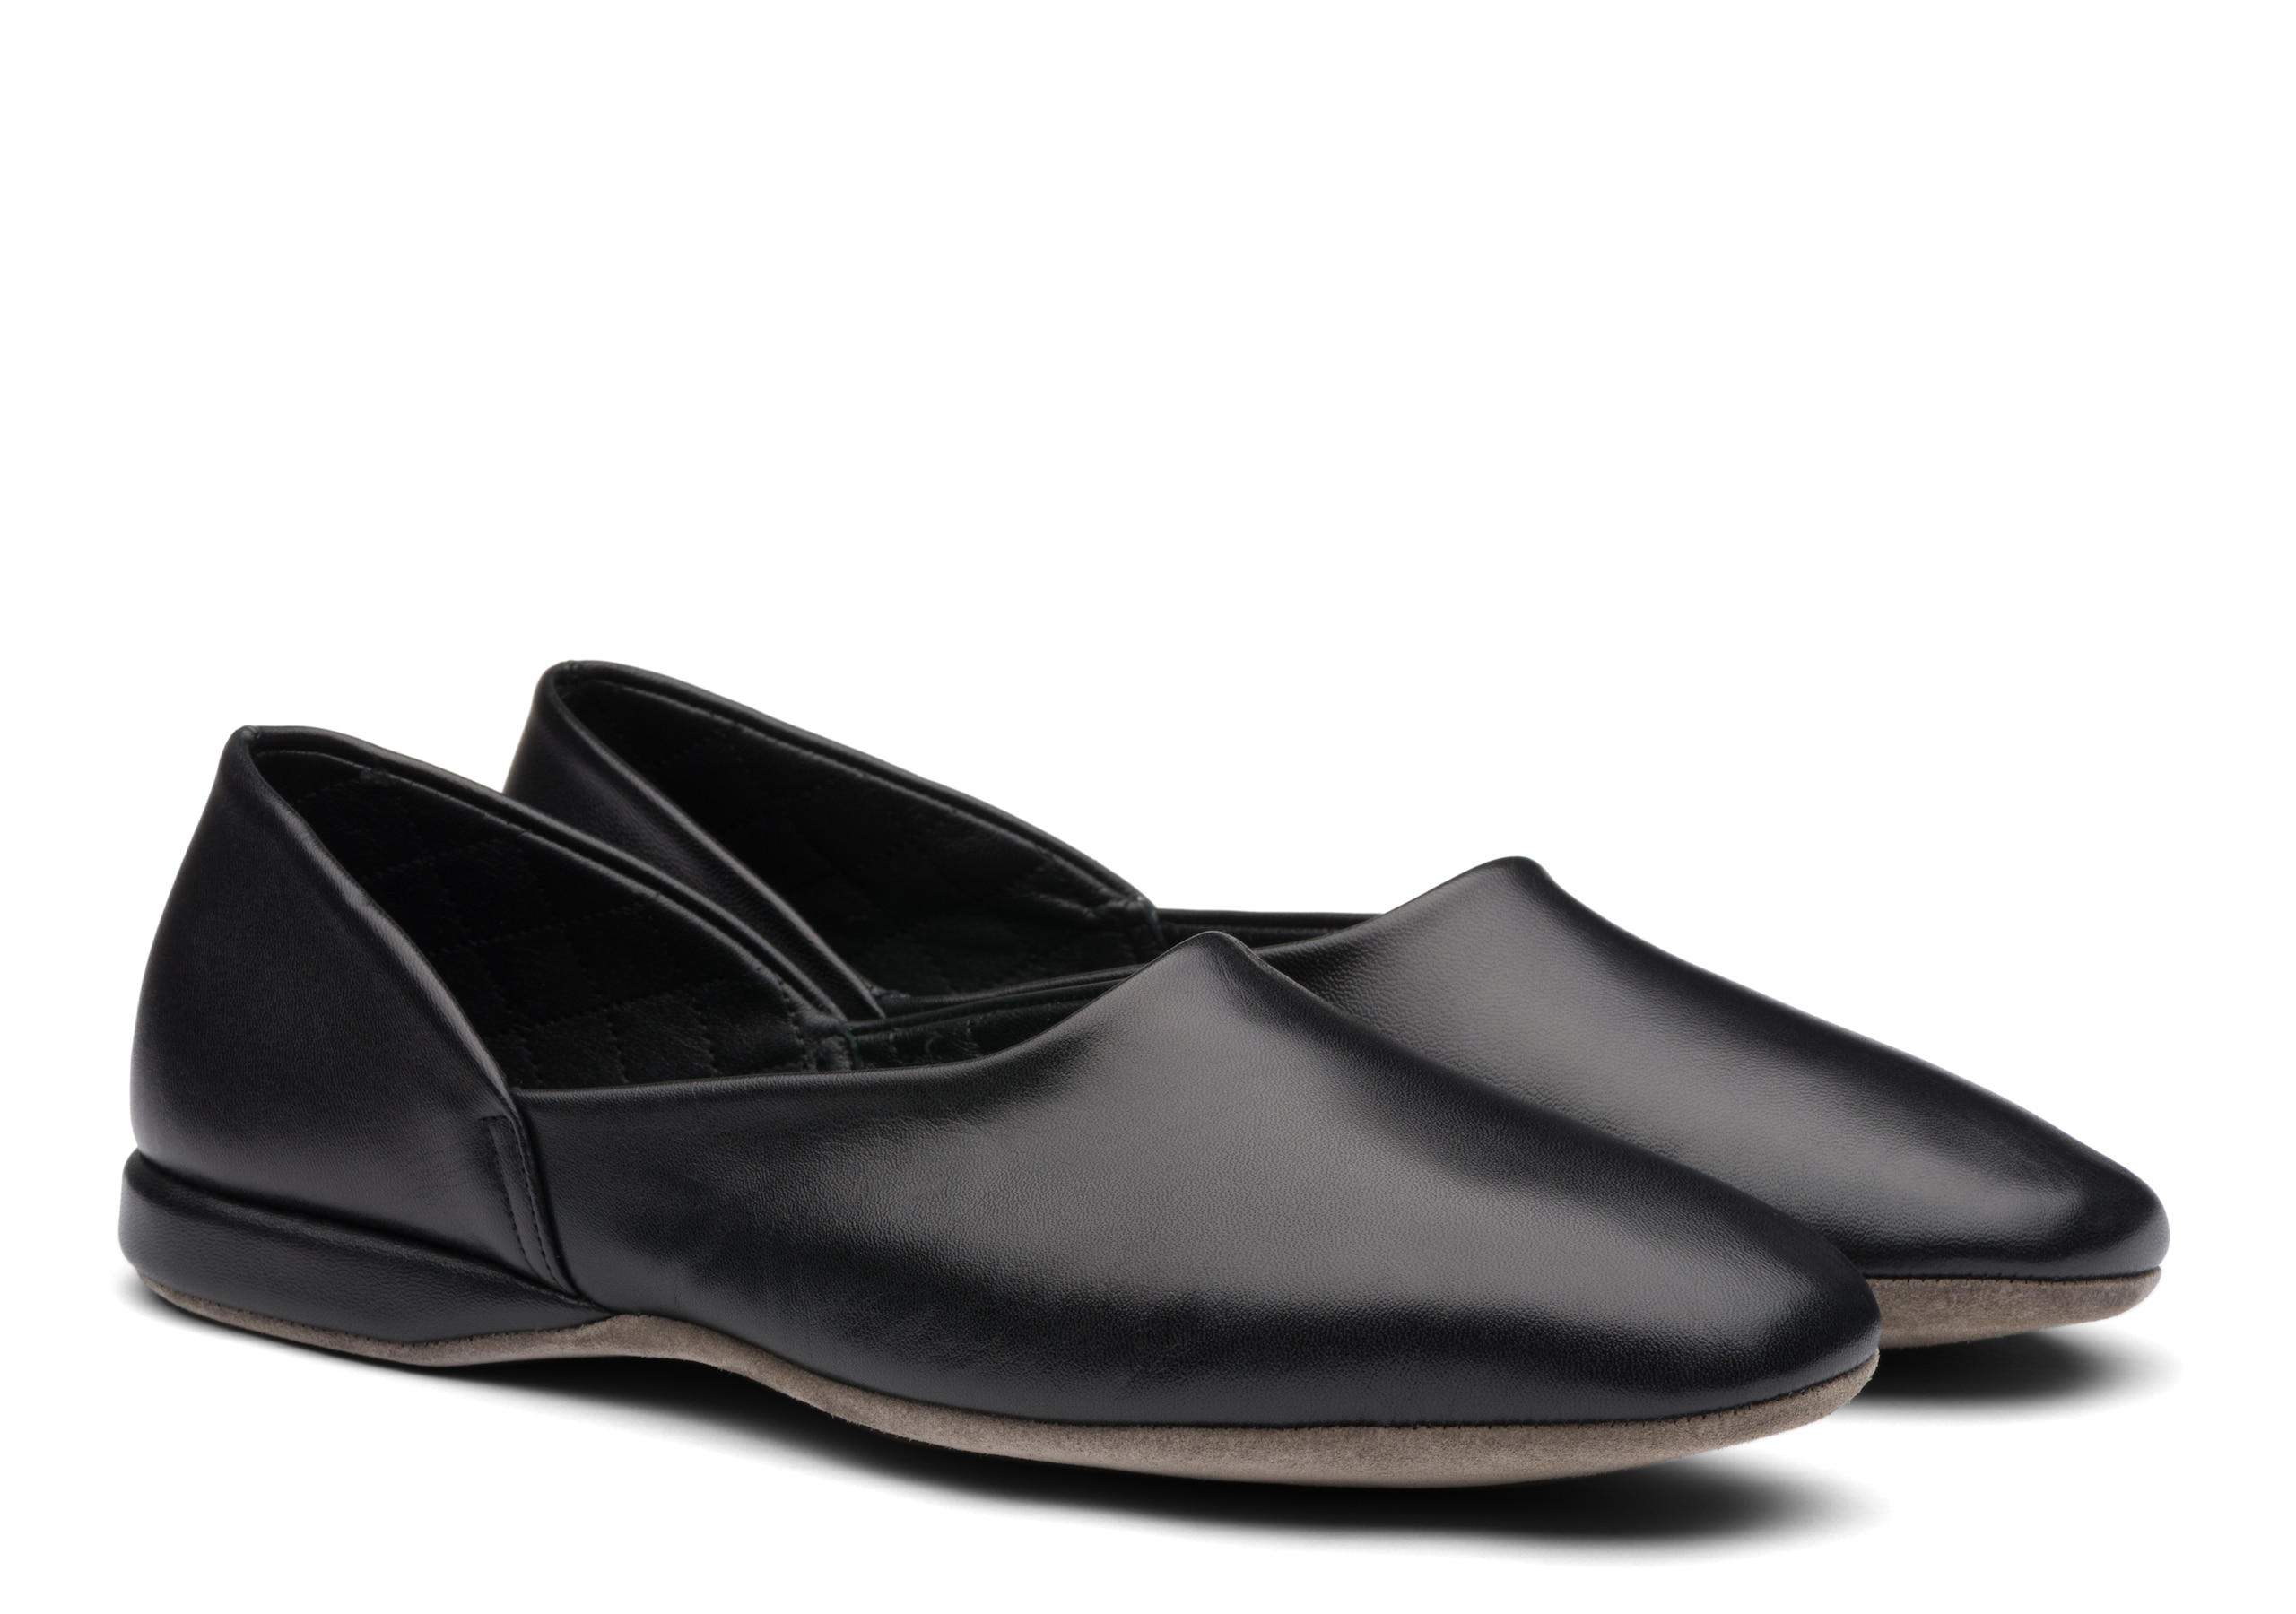 Jason 03 Church's Nappa Leather Grecian Slipper Black